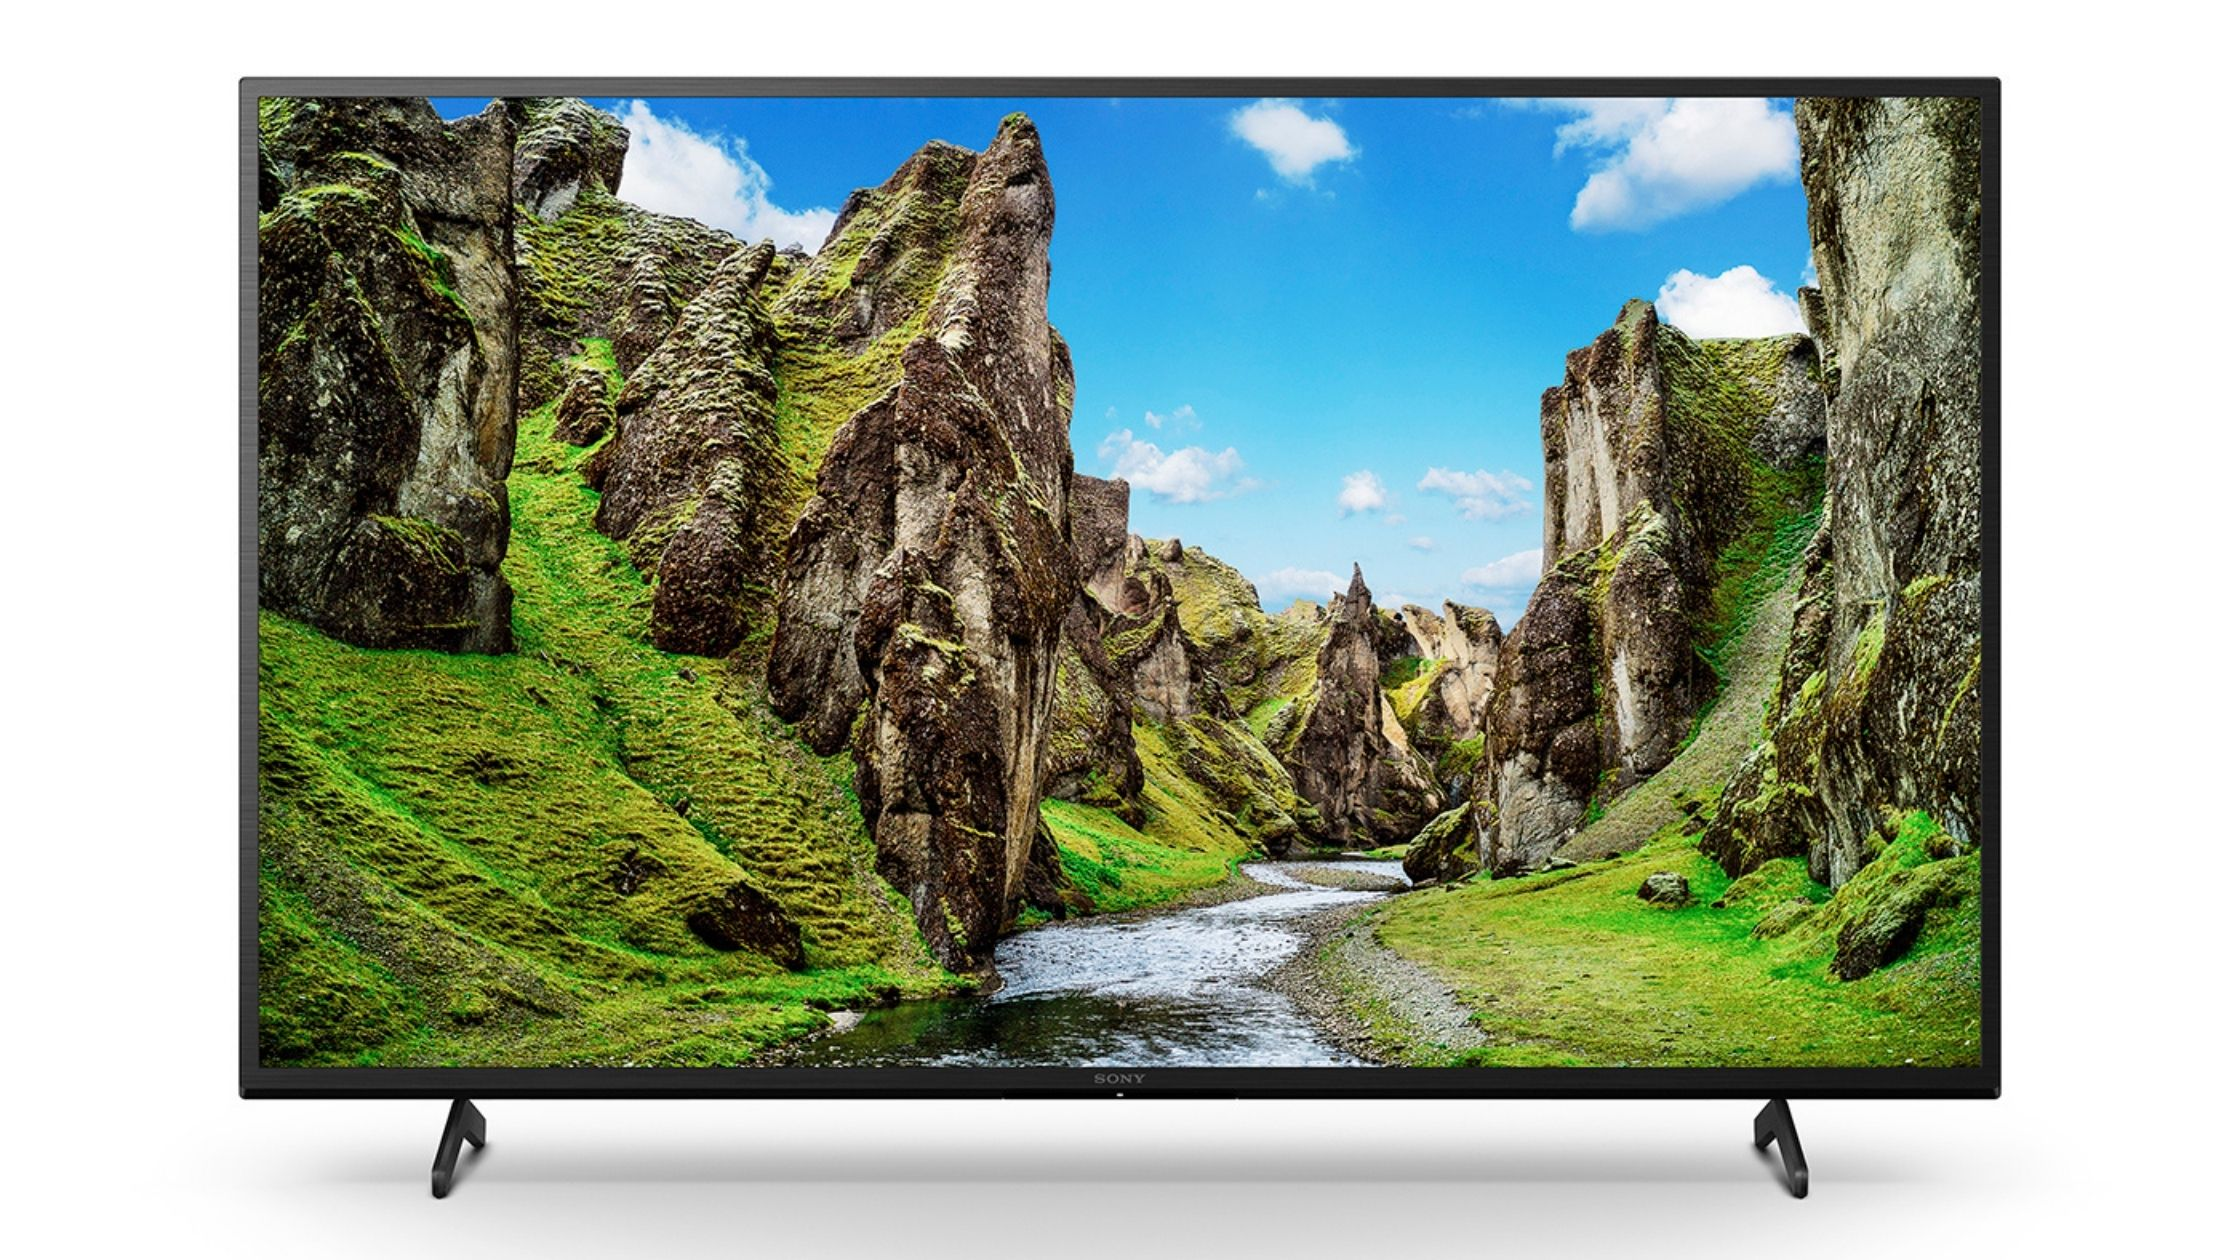 Sony Bravia X75 4K Android TV series launched in India starting at Rs 59,990 thumbnail